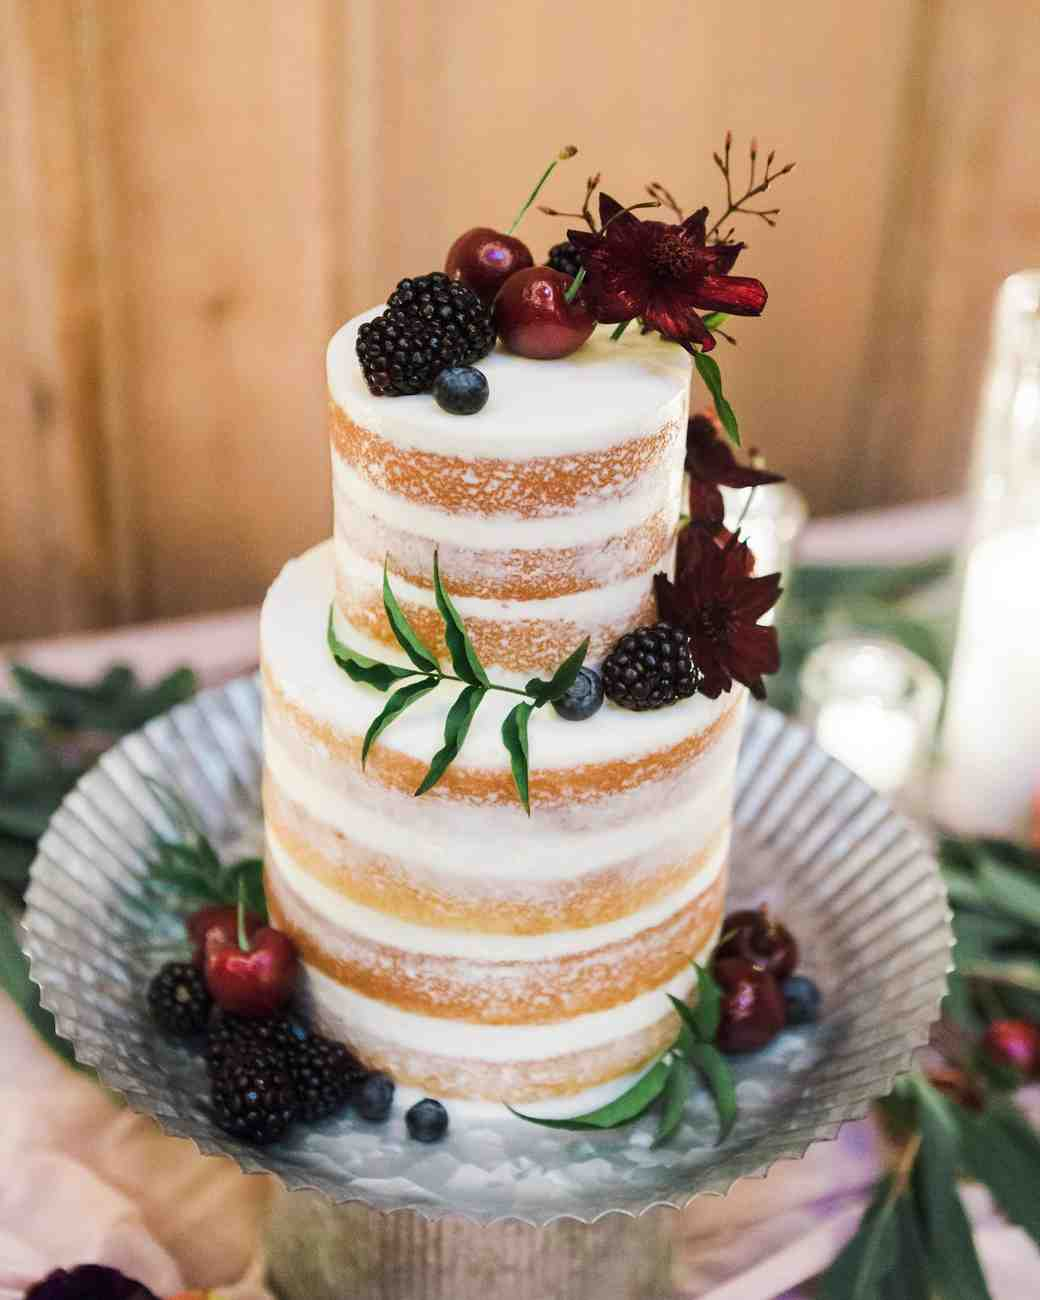 Rustic Wedding Cake Ideas And Inspiration: 30 Rustic Wedding Cakes We're Loving